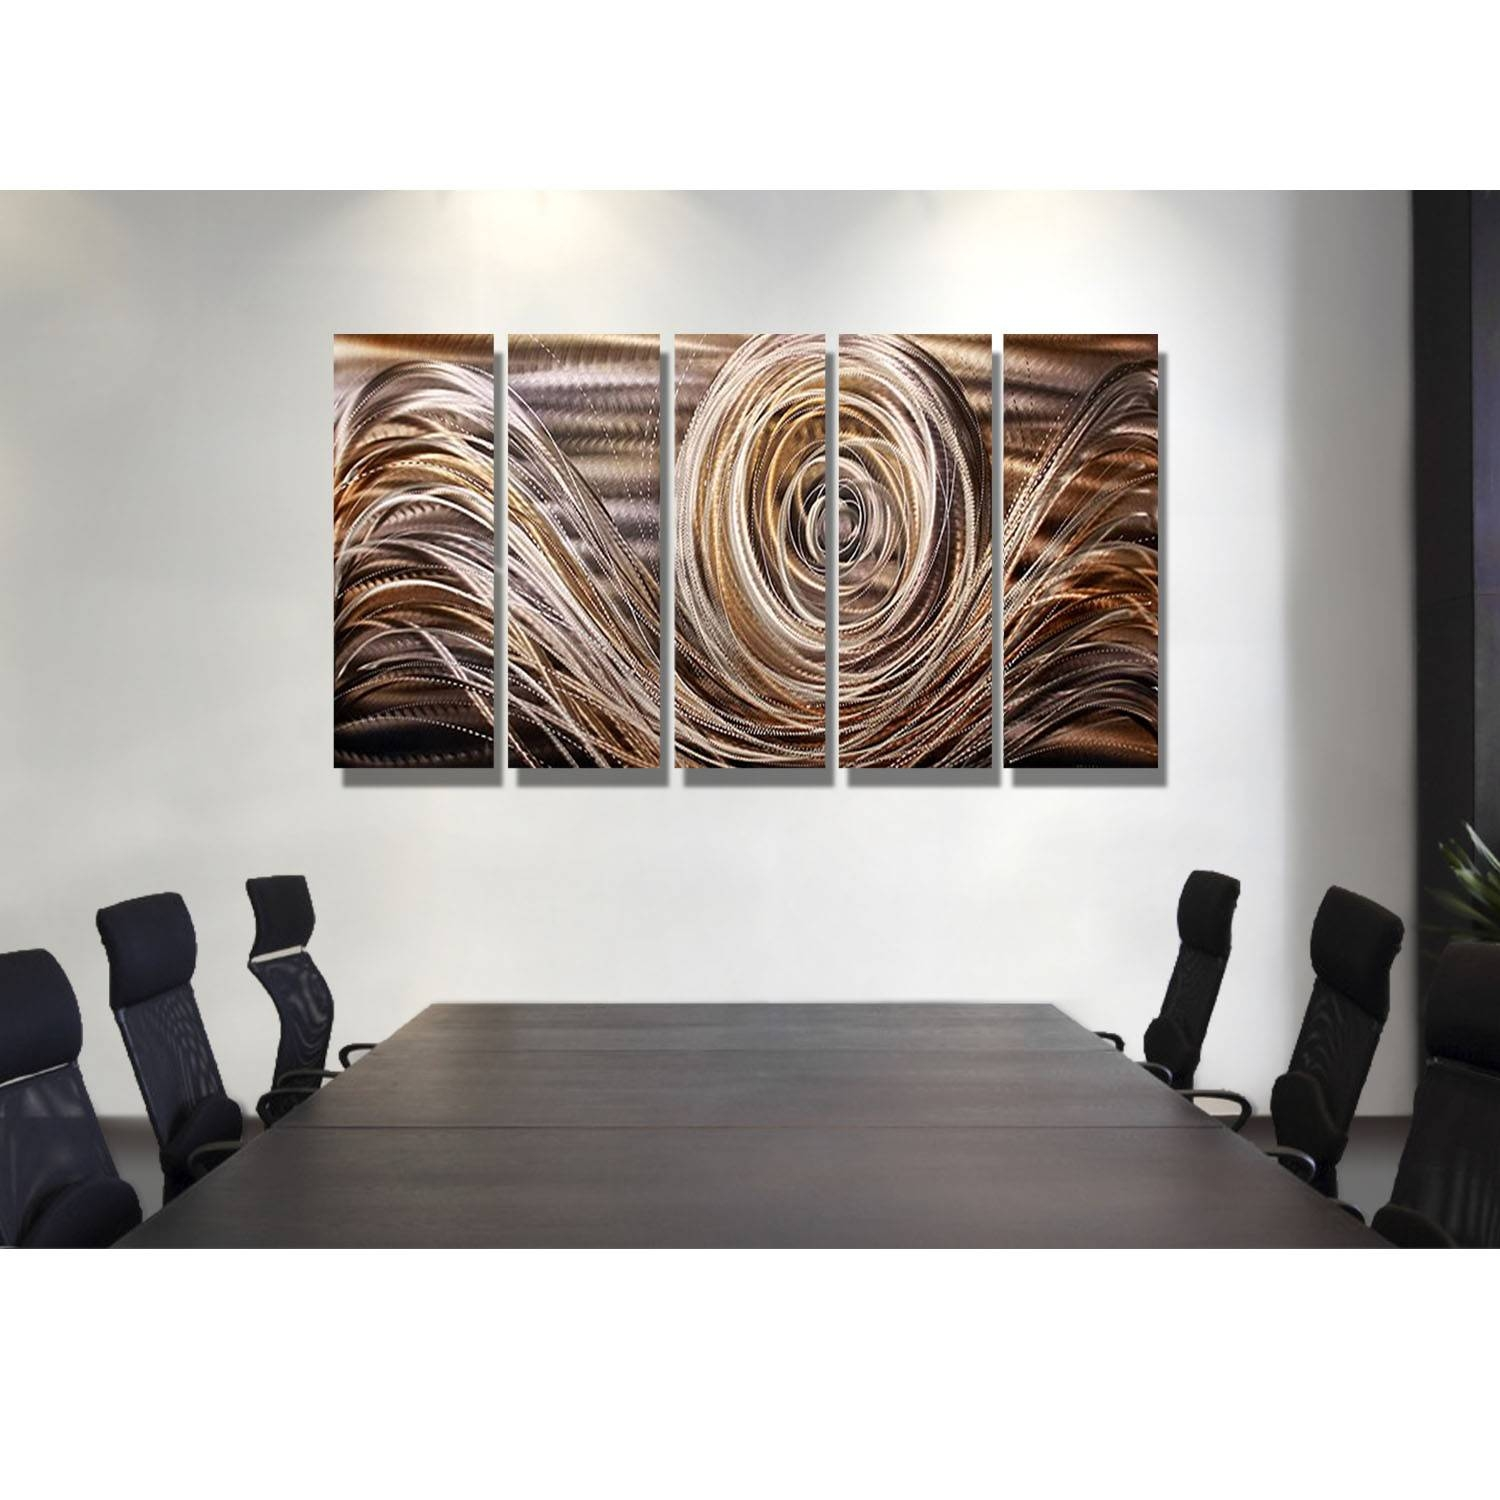 Mocha Swirl – Charcoal, Brown, Gold, And Silver Metal Wall Art – 5 Inside Current Swirl Metal Wall Art (View 13 of 20)